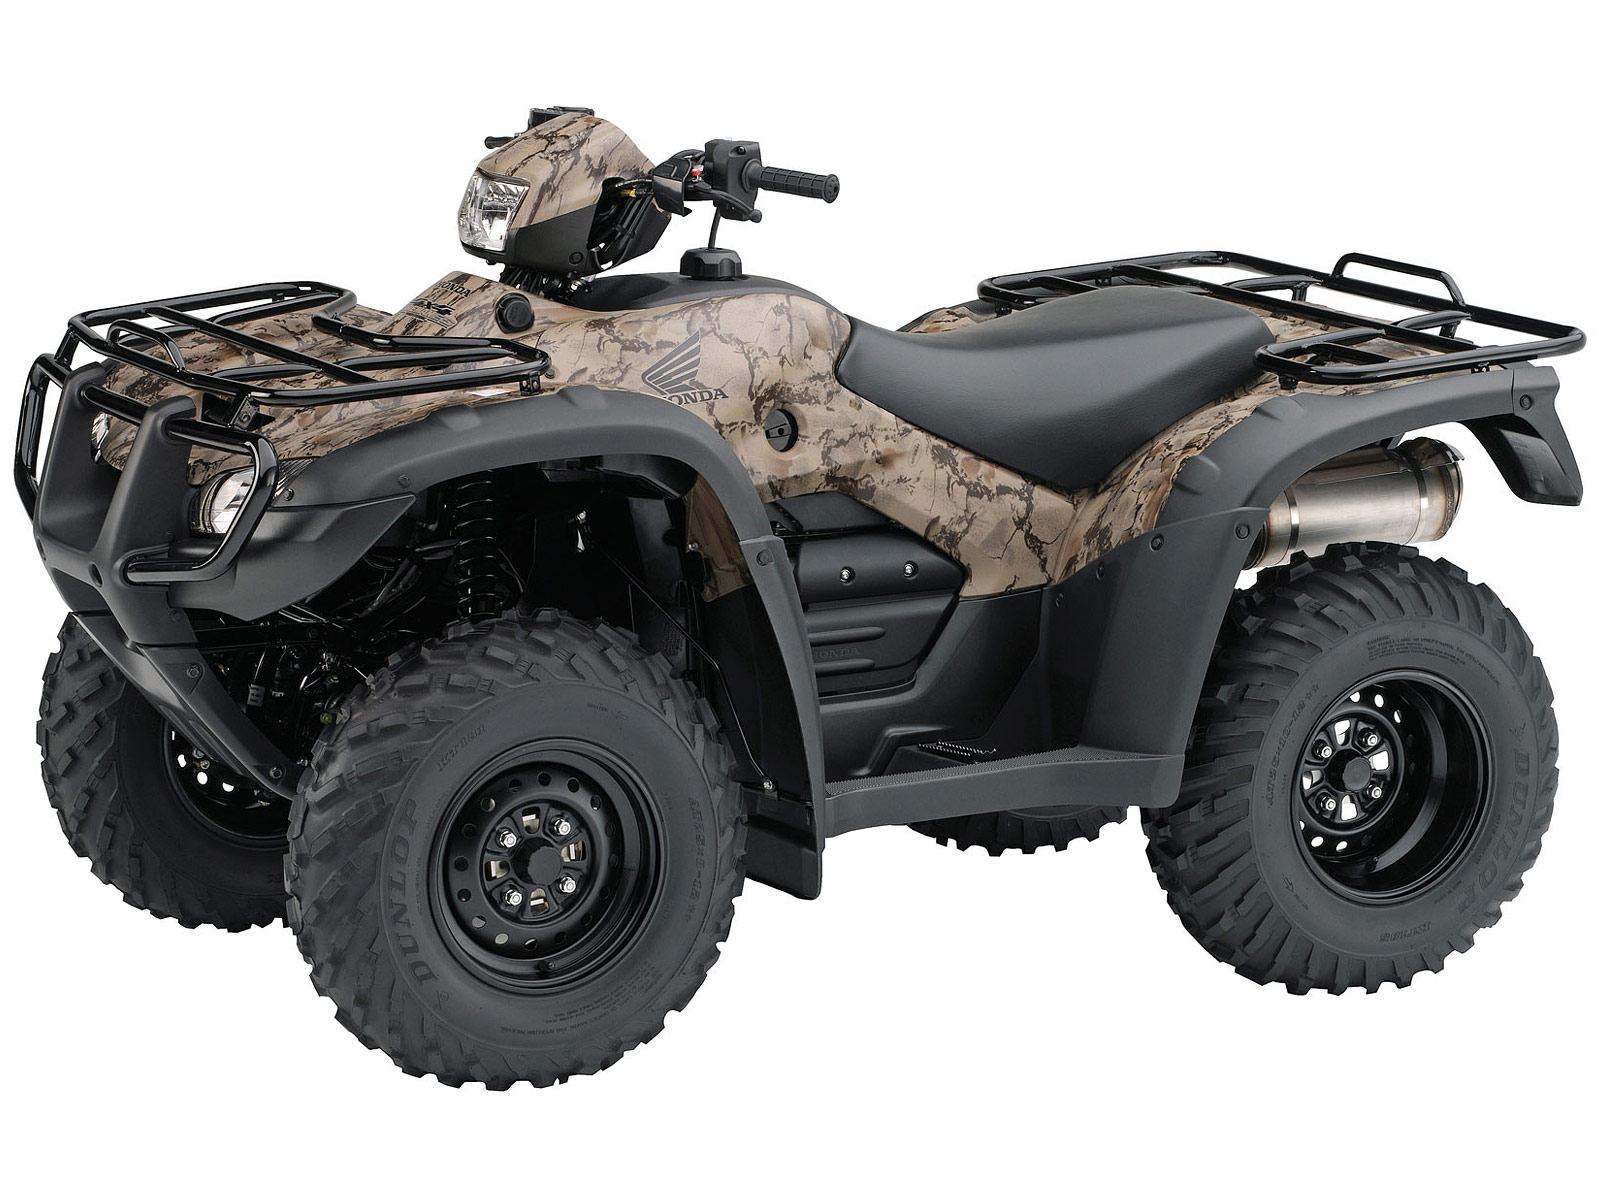 http://1.bp.blogspot.com/-xY5f_agzu4s/Ttrgk_sTq7I/AAAAAAAAKDM/cSdrQVsvbGs/s1600/2011-Honda-FourTrax-Foreman-4X4-ES-with-Power-Steering-TRX500FPE_atv-wallpapers_3.jpg